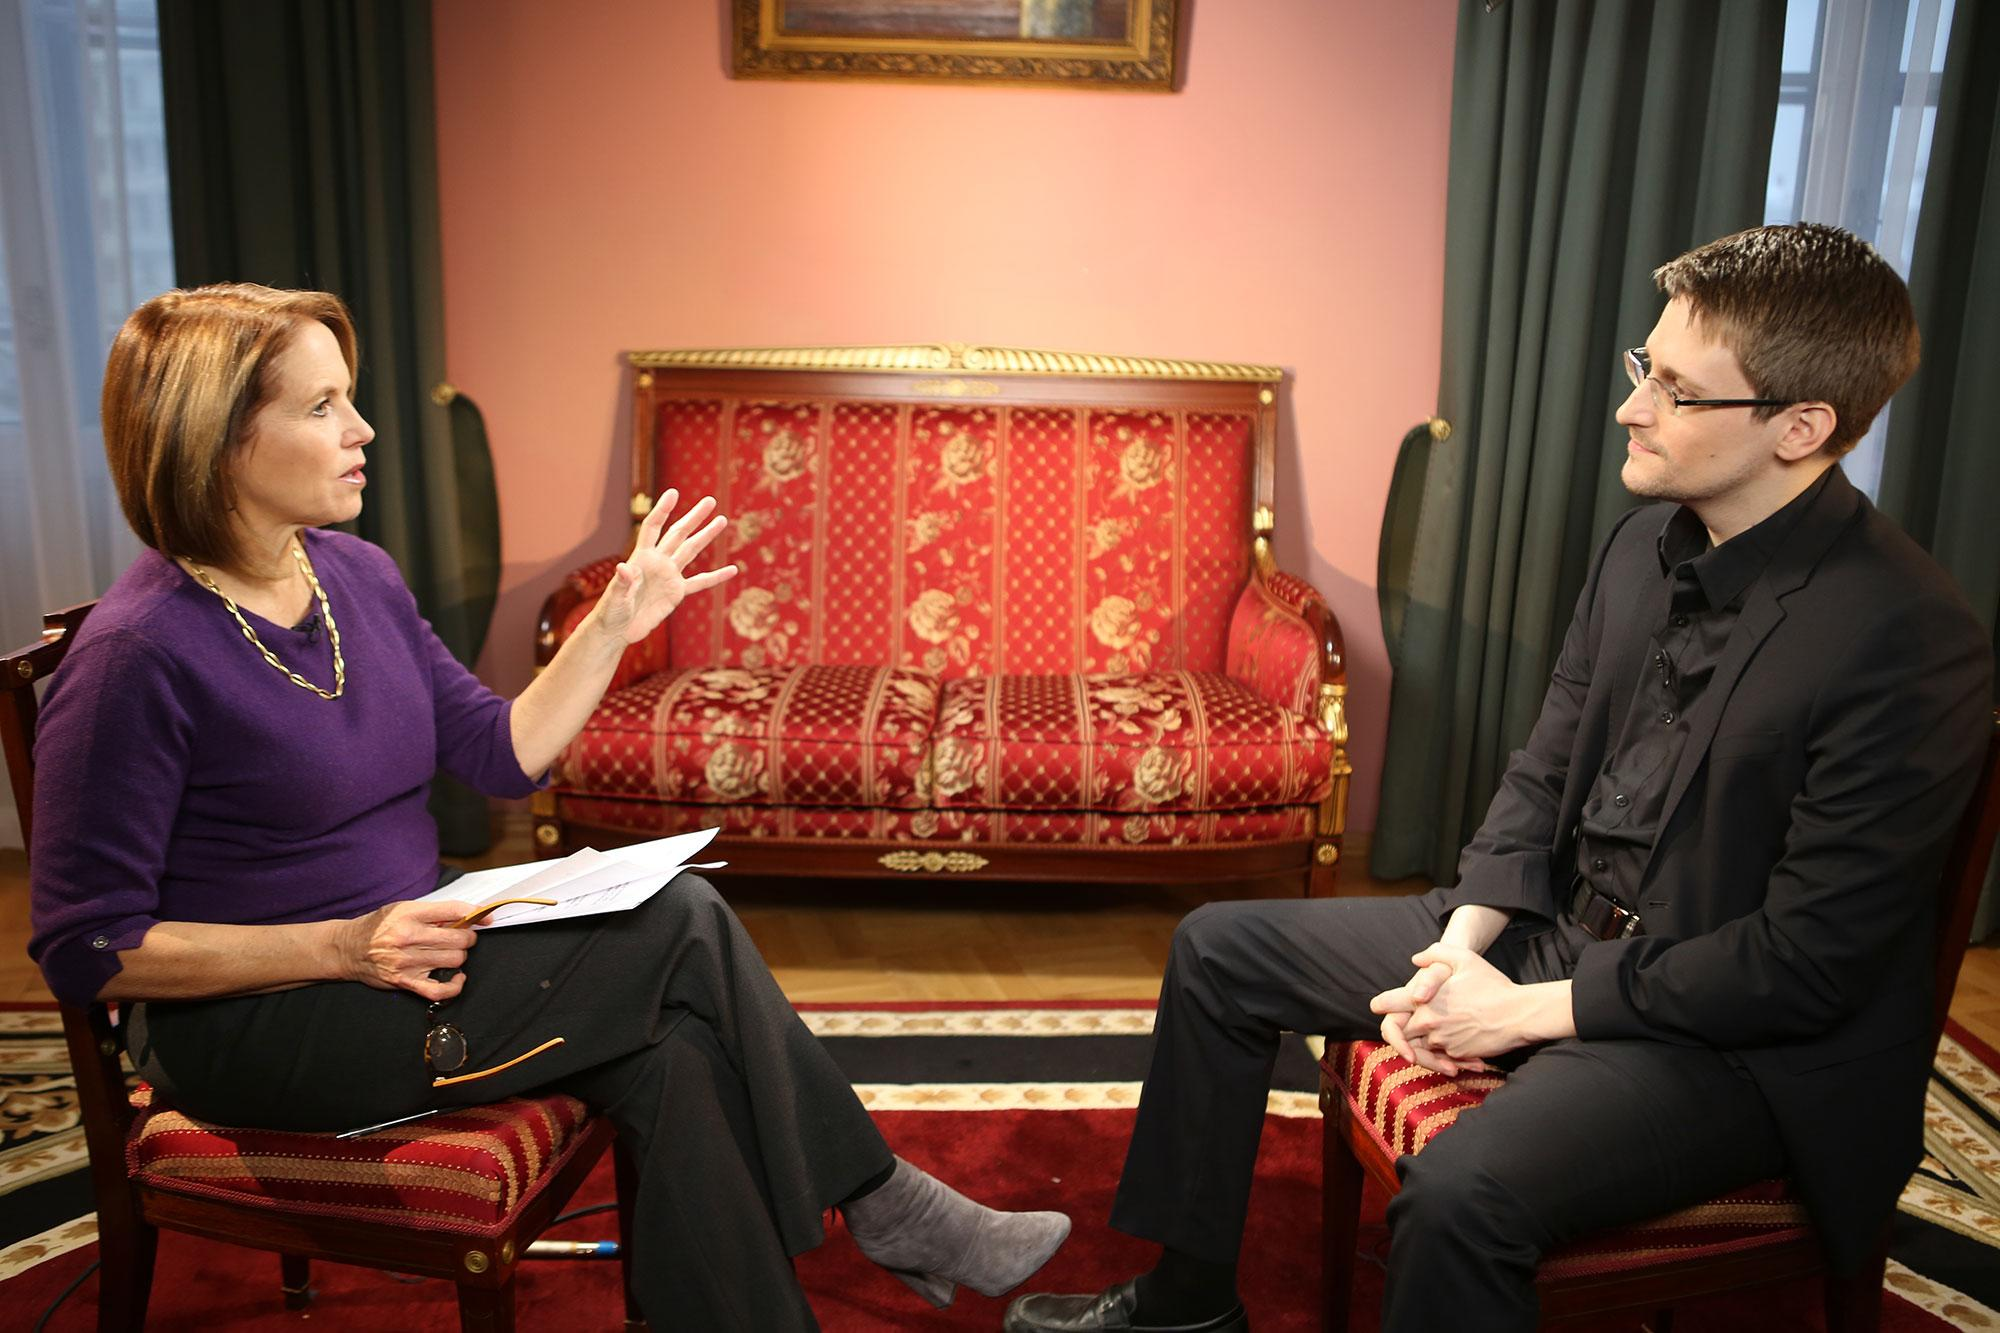 <p>Yahoo Yahoo Global News Anchor Katie Couric interviews Edward Snowden in Moscow on December 3, 2016. (Photo: Brad Williams/Yahoo News) </p>